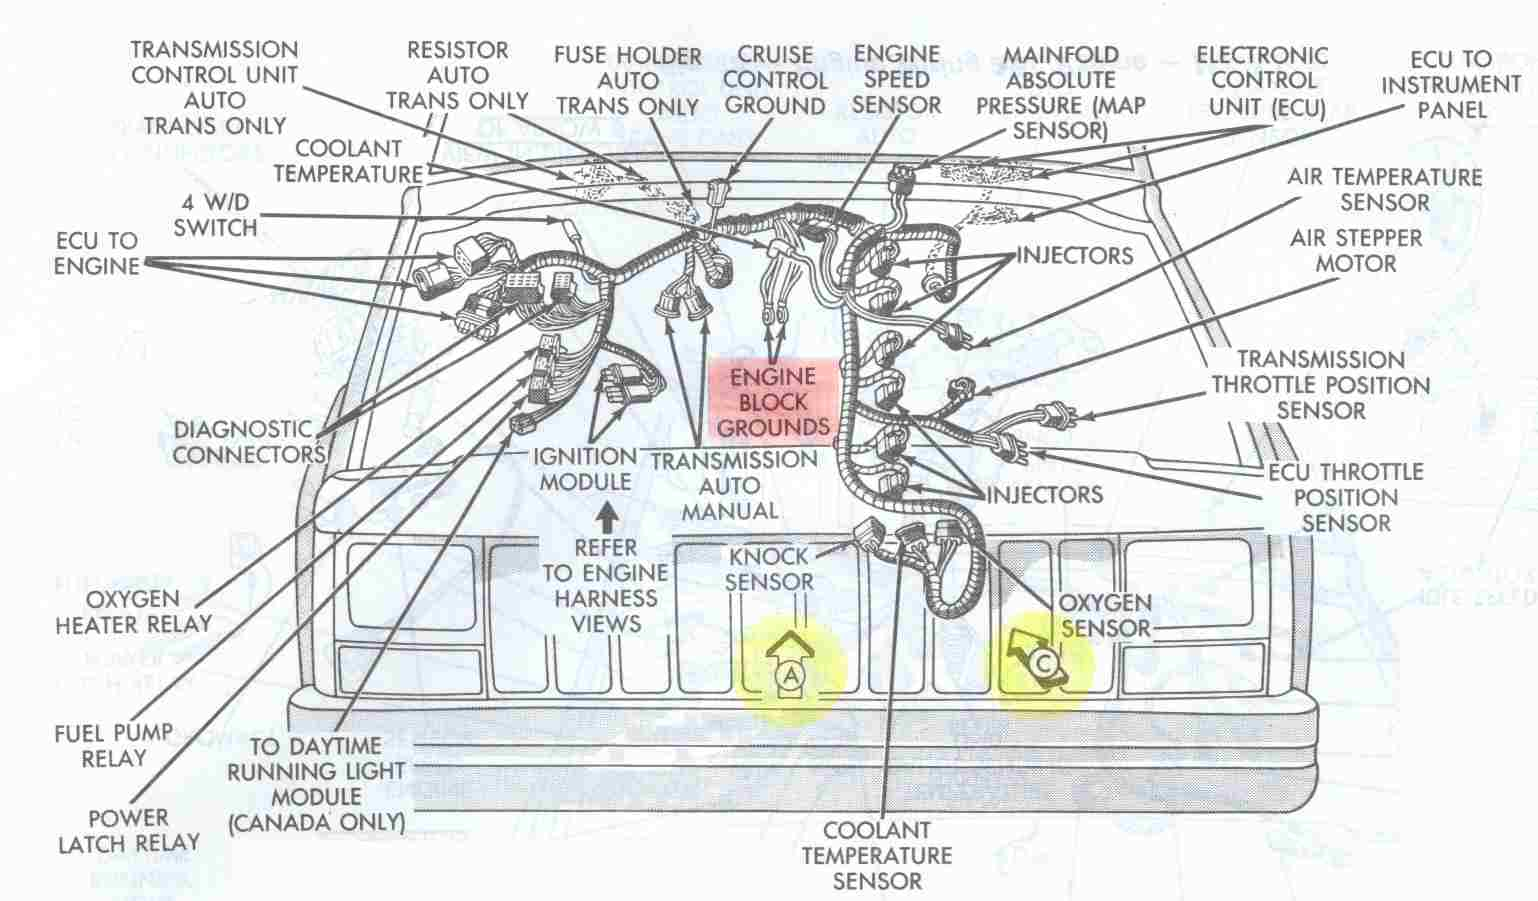 Electrical_Engine_Ground_Points_Overview jeep cherokee electrical diagnosing erratic behavior of engine 1995 jeep grand cherokee transmission wiring harness at gsmportal.co